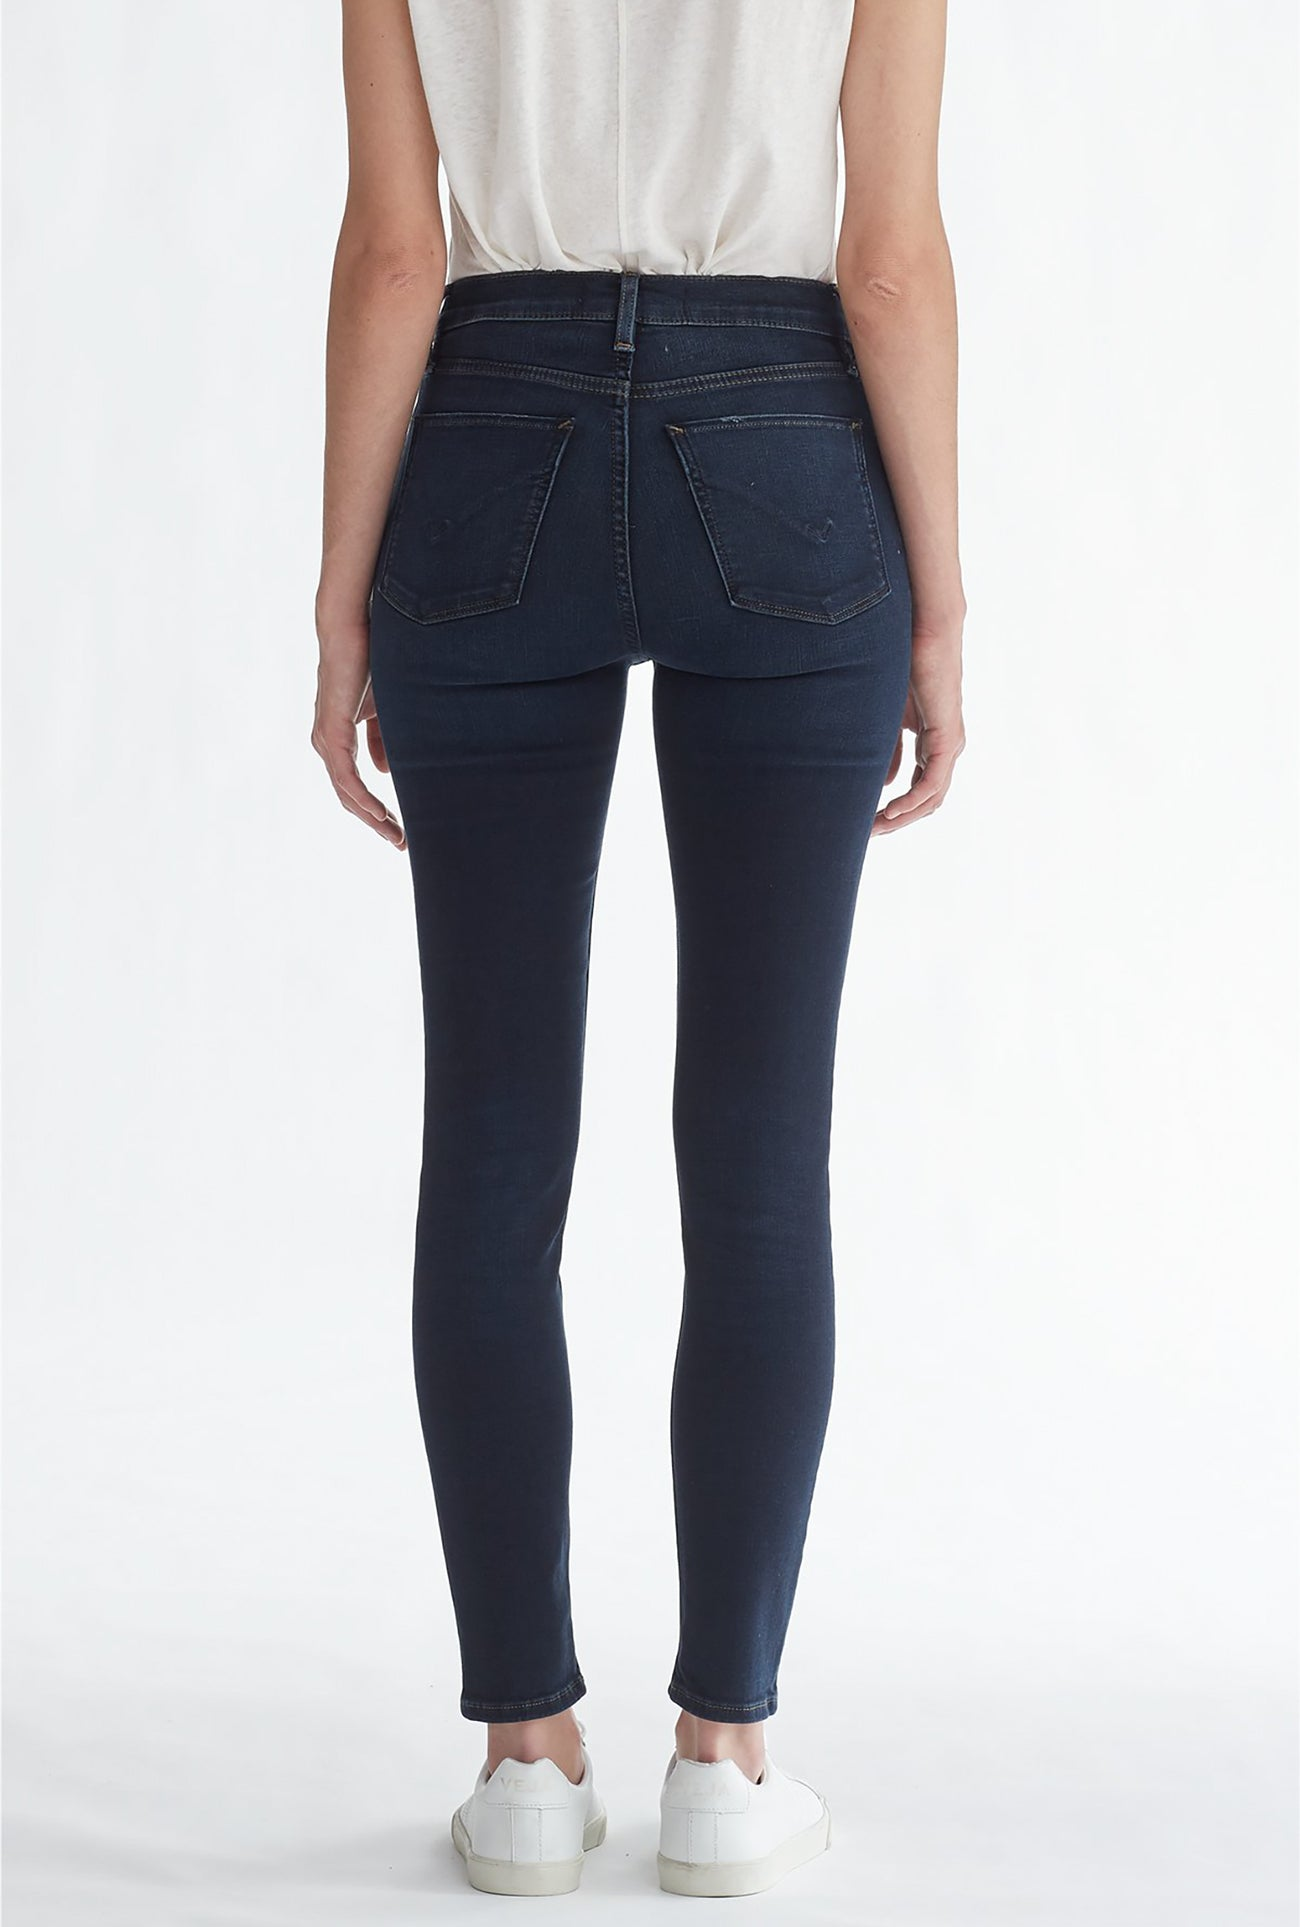 Barbara High Waist Super Skinny Ankle Jean